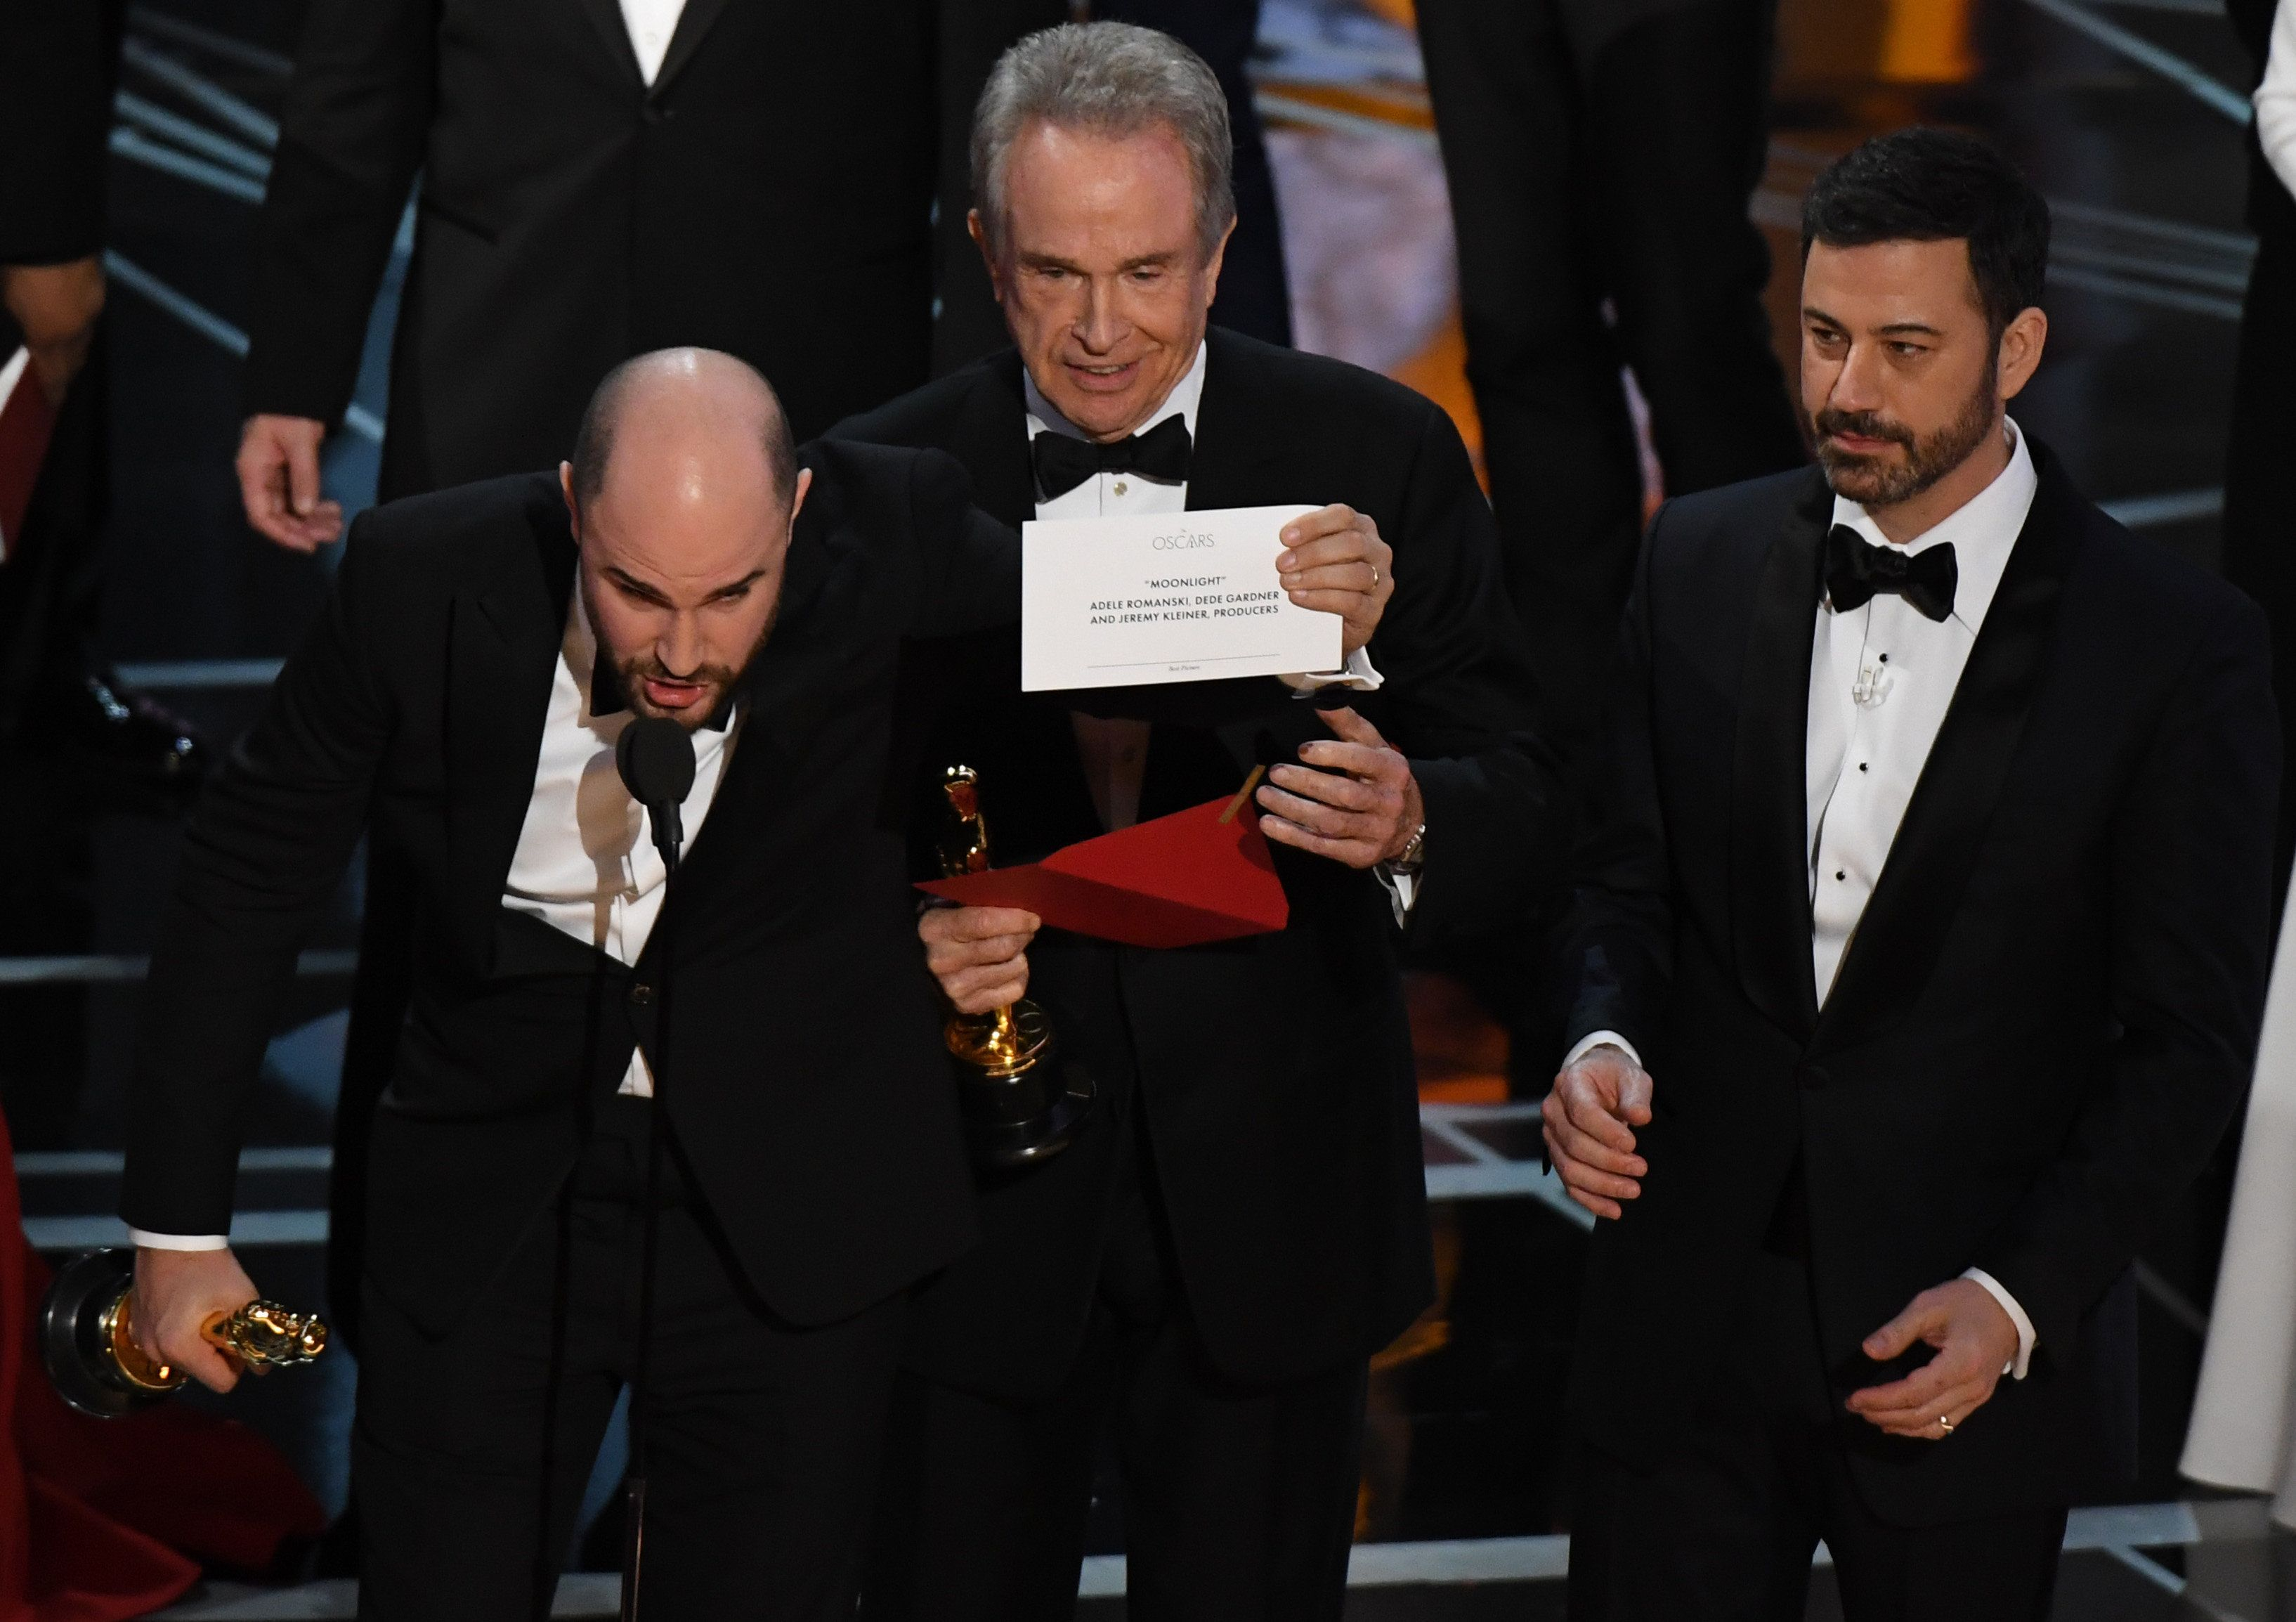 'La La Land' producer Jordan Horowitz (L) shows the card saying 'Moonlight' won the best picture as actor Warren Beatty  (C), and Host Jimmy Kimmel look on at the 89th Oscars on February 26, 2017 in Hollywood, California. / AFP / Mark RALSTON        (Photo credit should read MARK RALSTON/AFP/Getty Images)